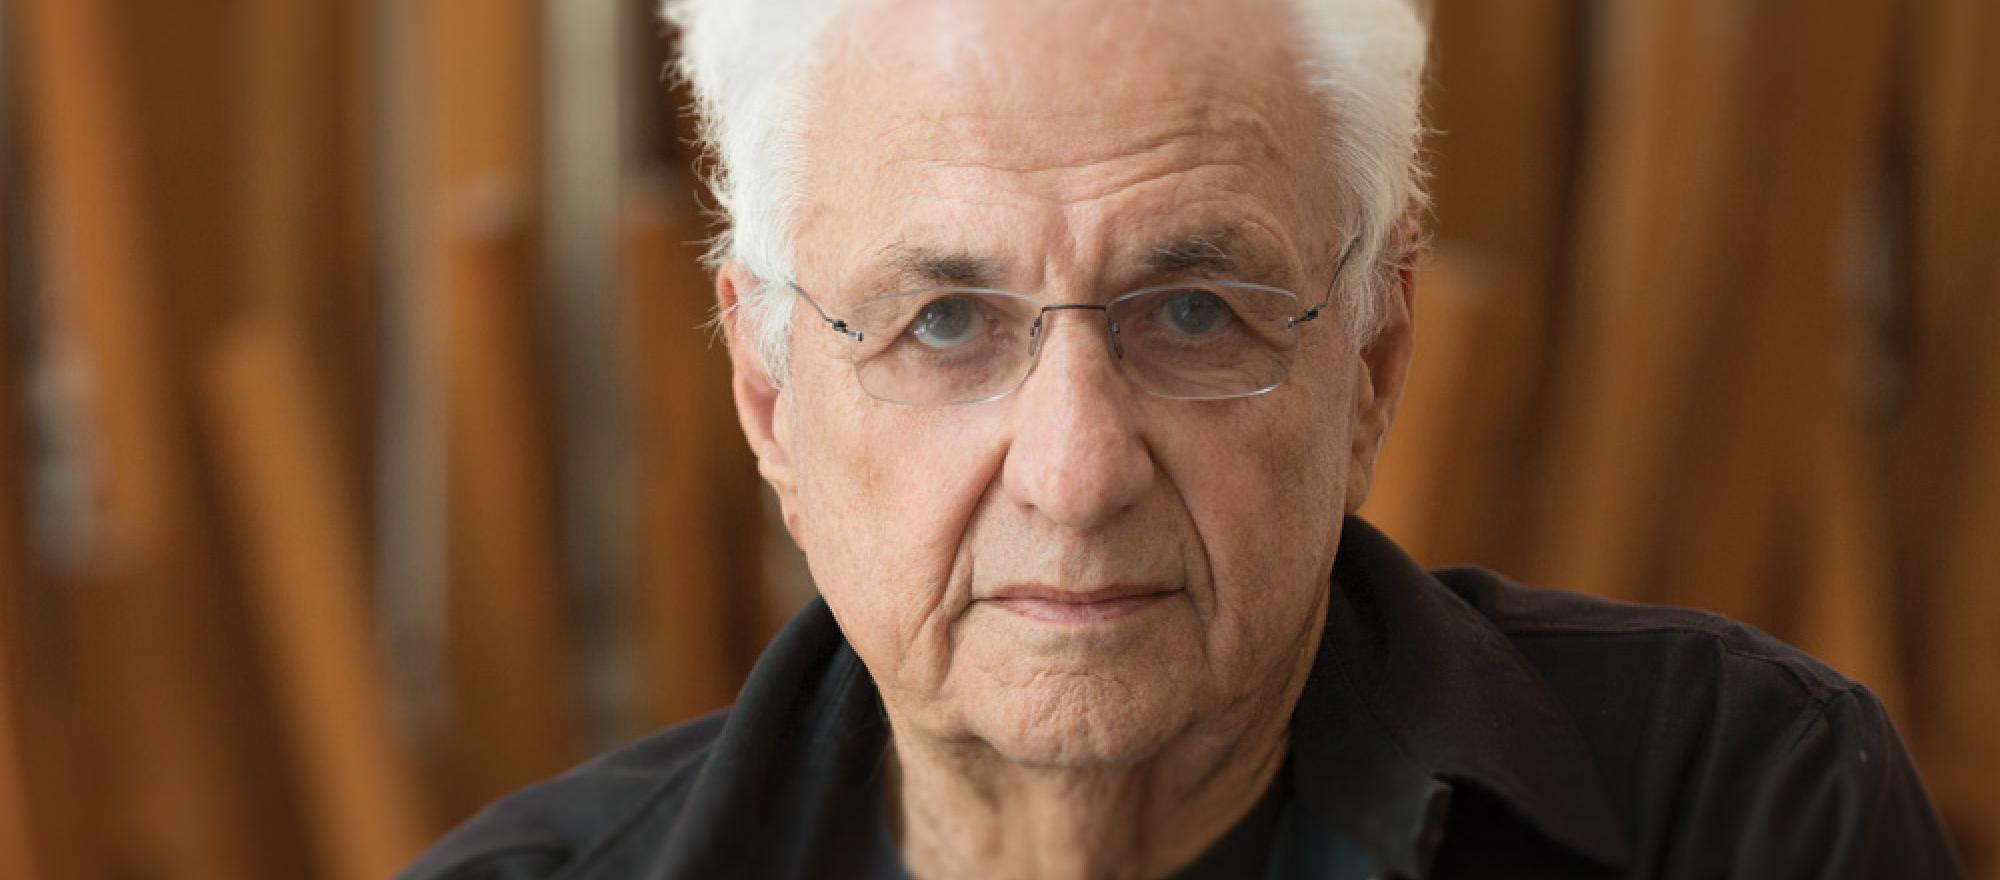 Architect Frank Gehry.  All photos by Chad Slattery except where noted.